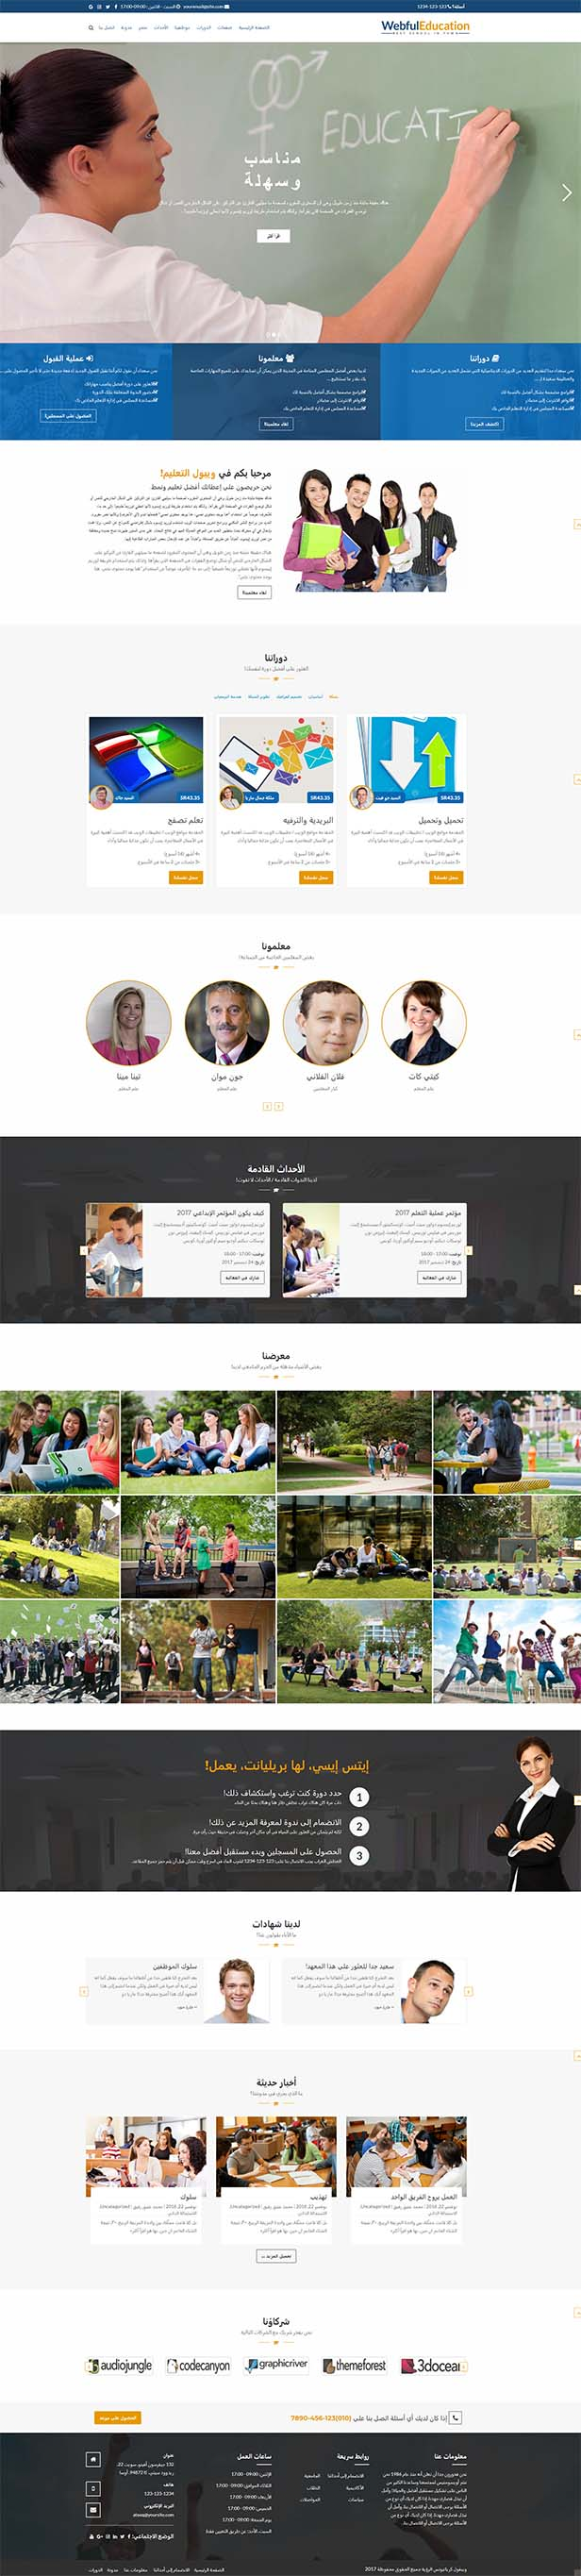 Arabic Education WordPress Theme